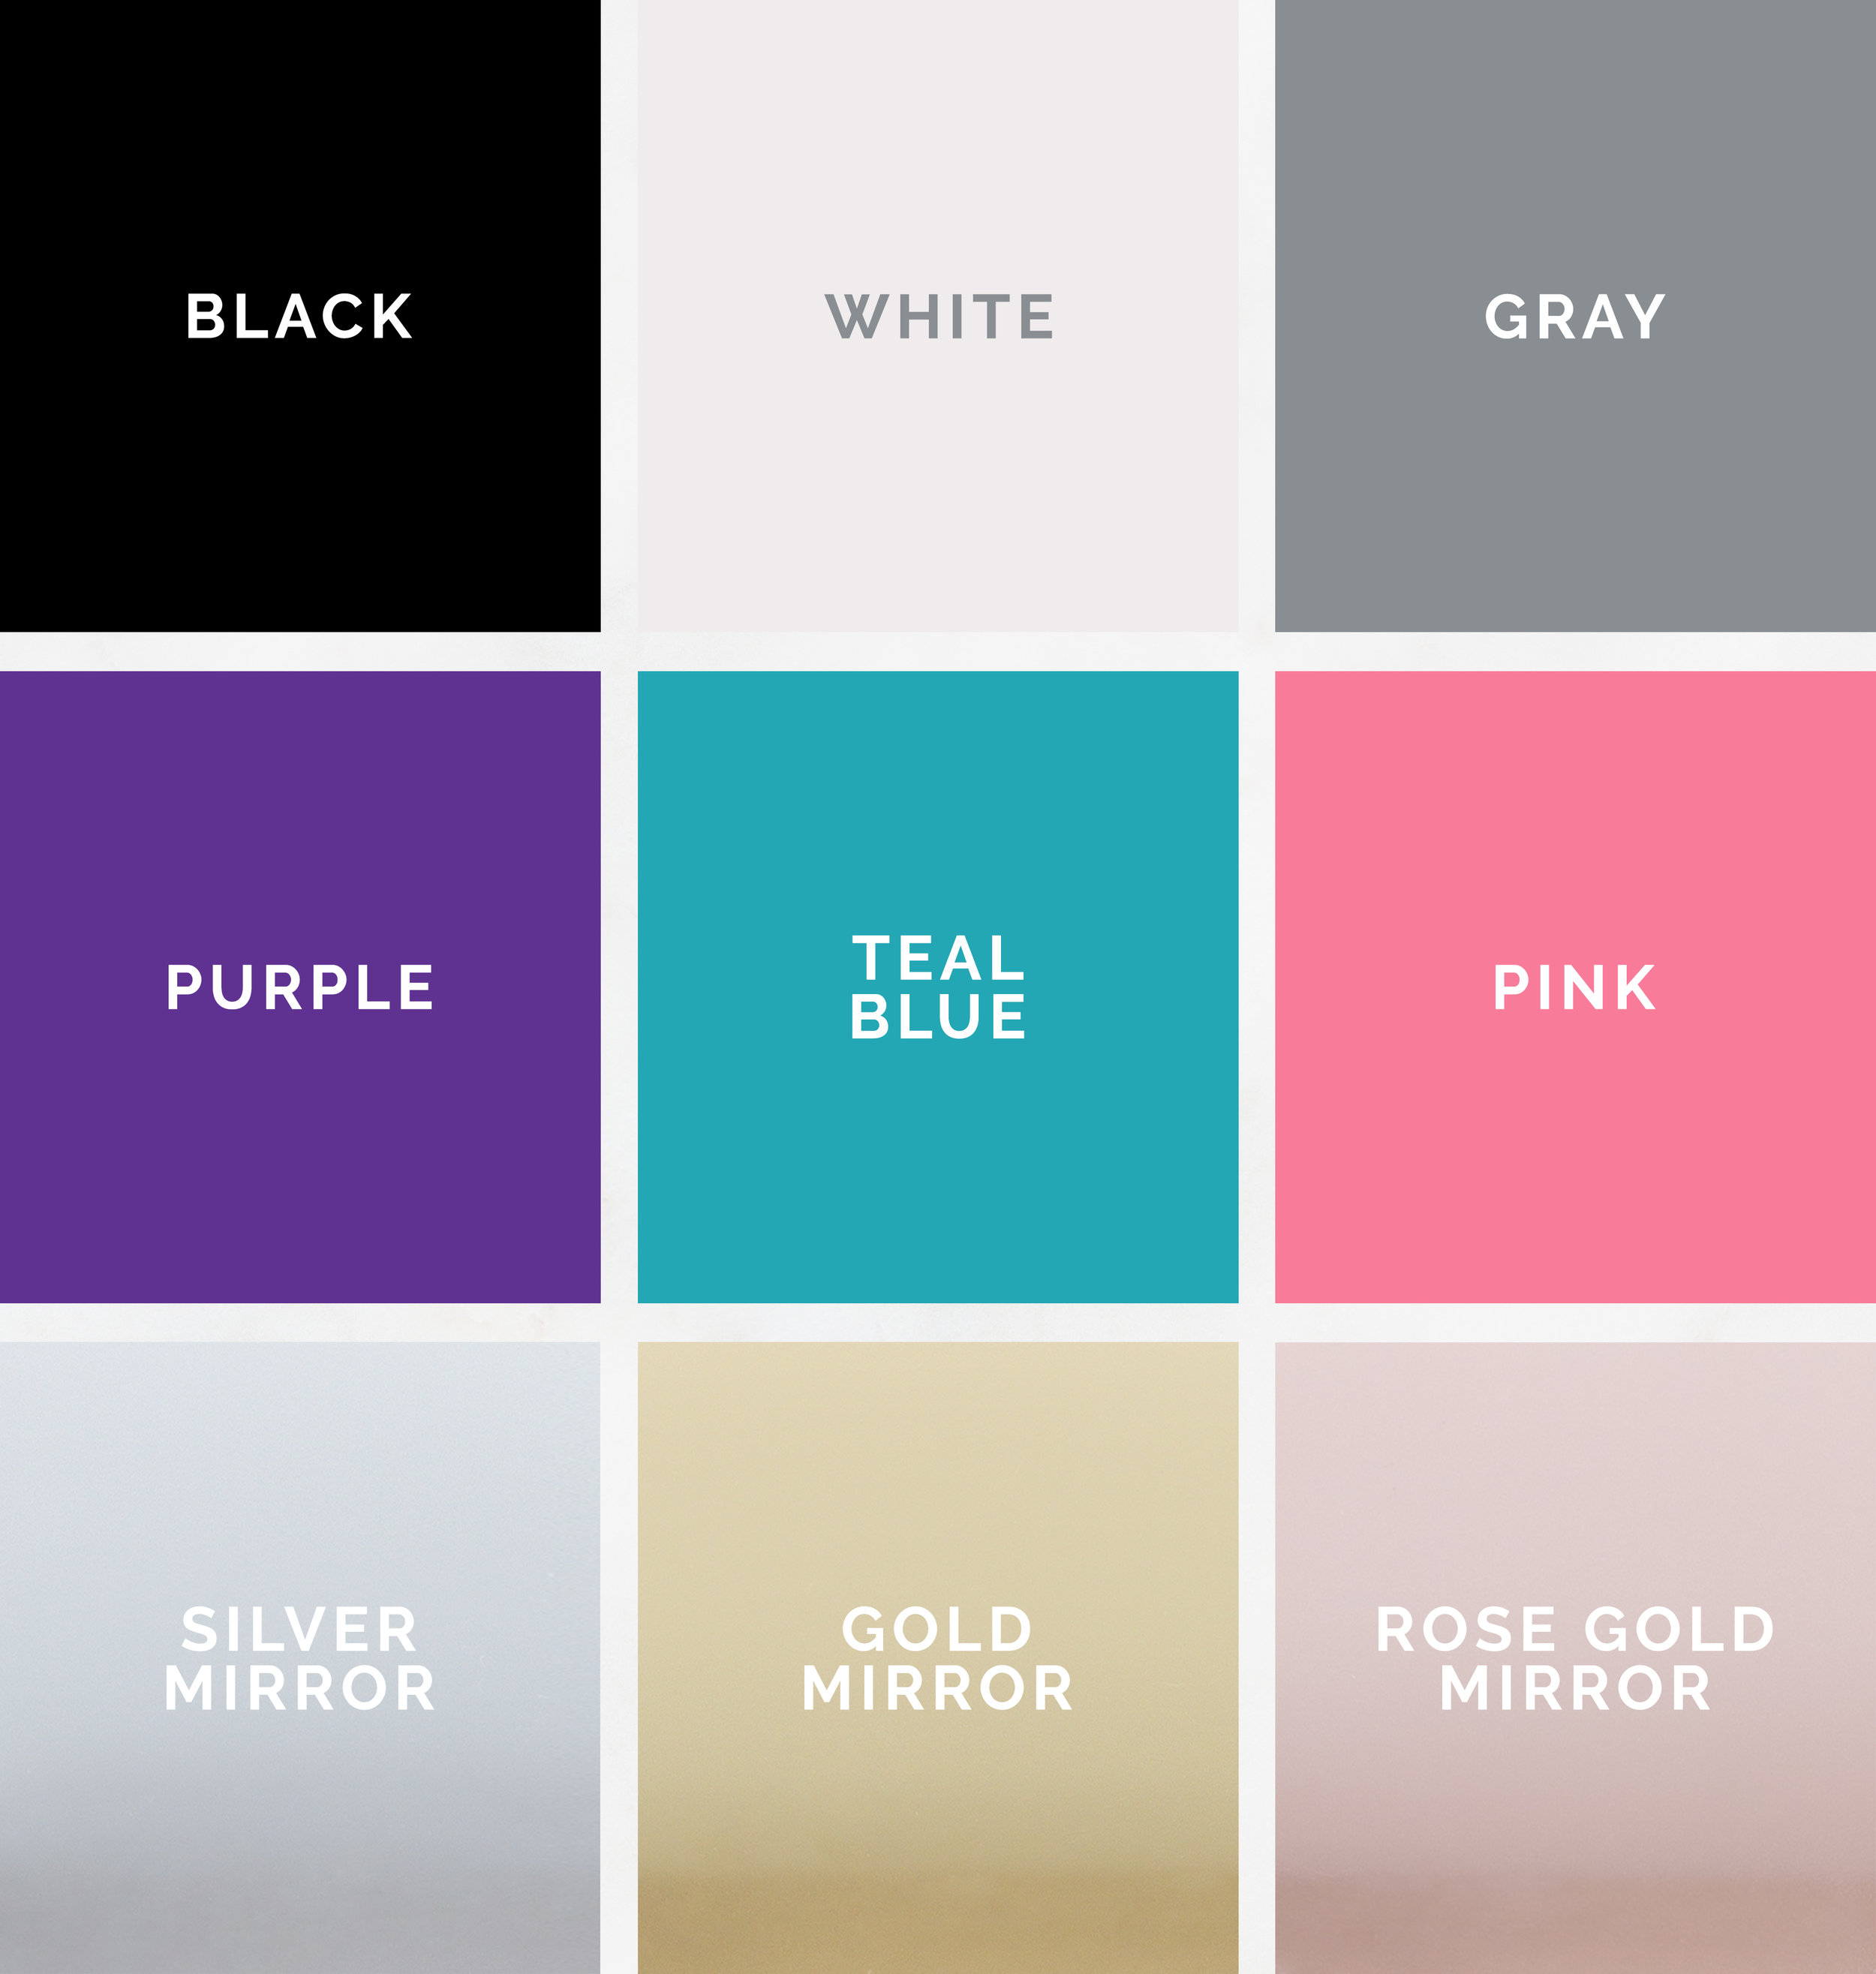 Quick_Guide_Images_Color_Swatches.jpg